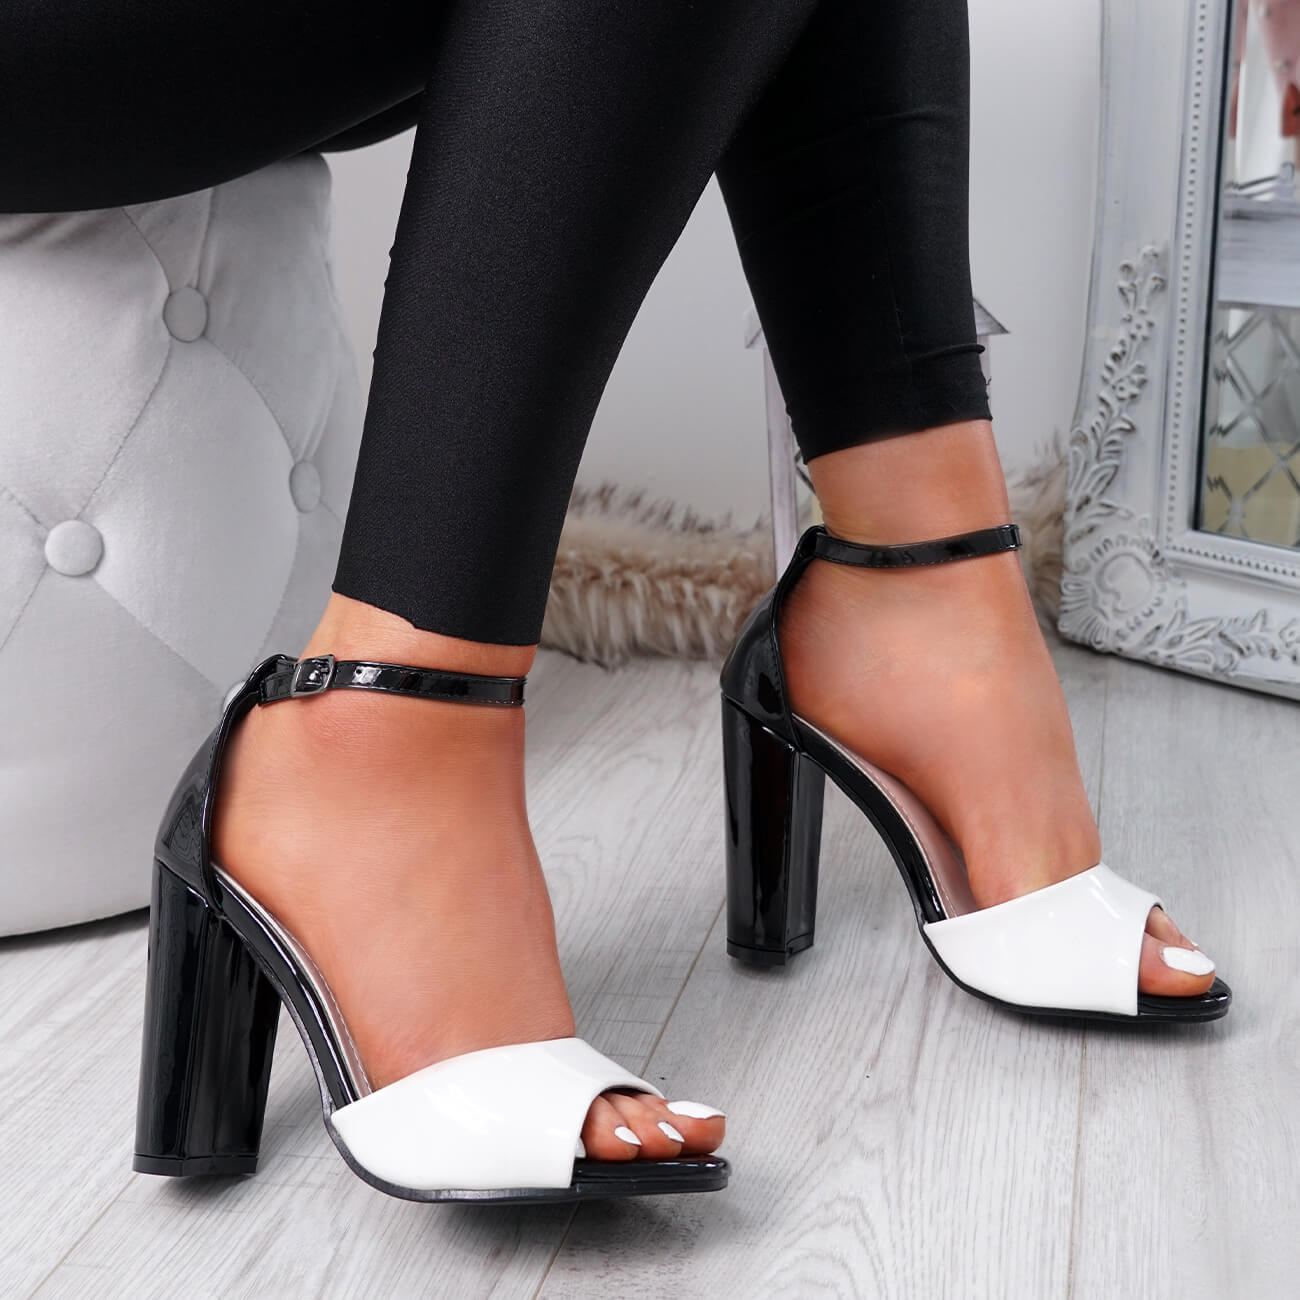 WOMENS-LADIES-ANKLE-STRAP-HIGH-BLOCK-HEEL-SANDALS-PEEP-TOE-OFFICE-CASUAL-SHOES thumbnail 30